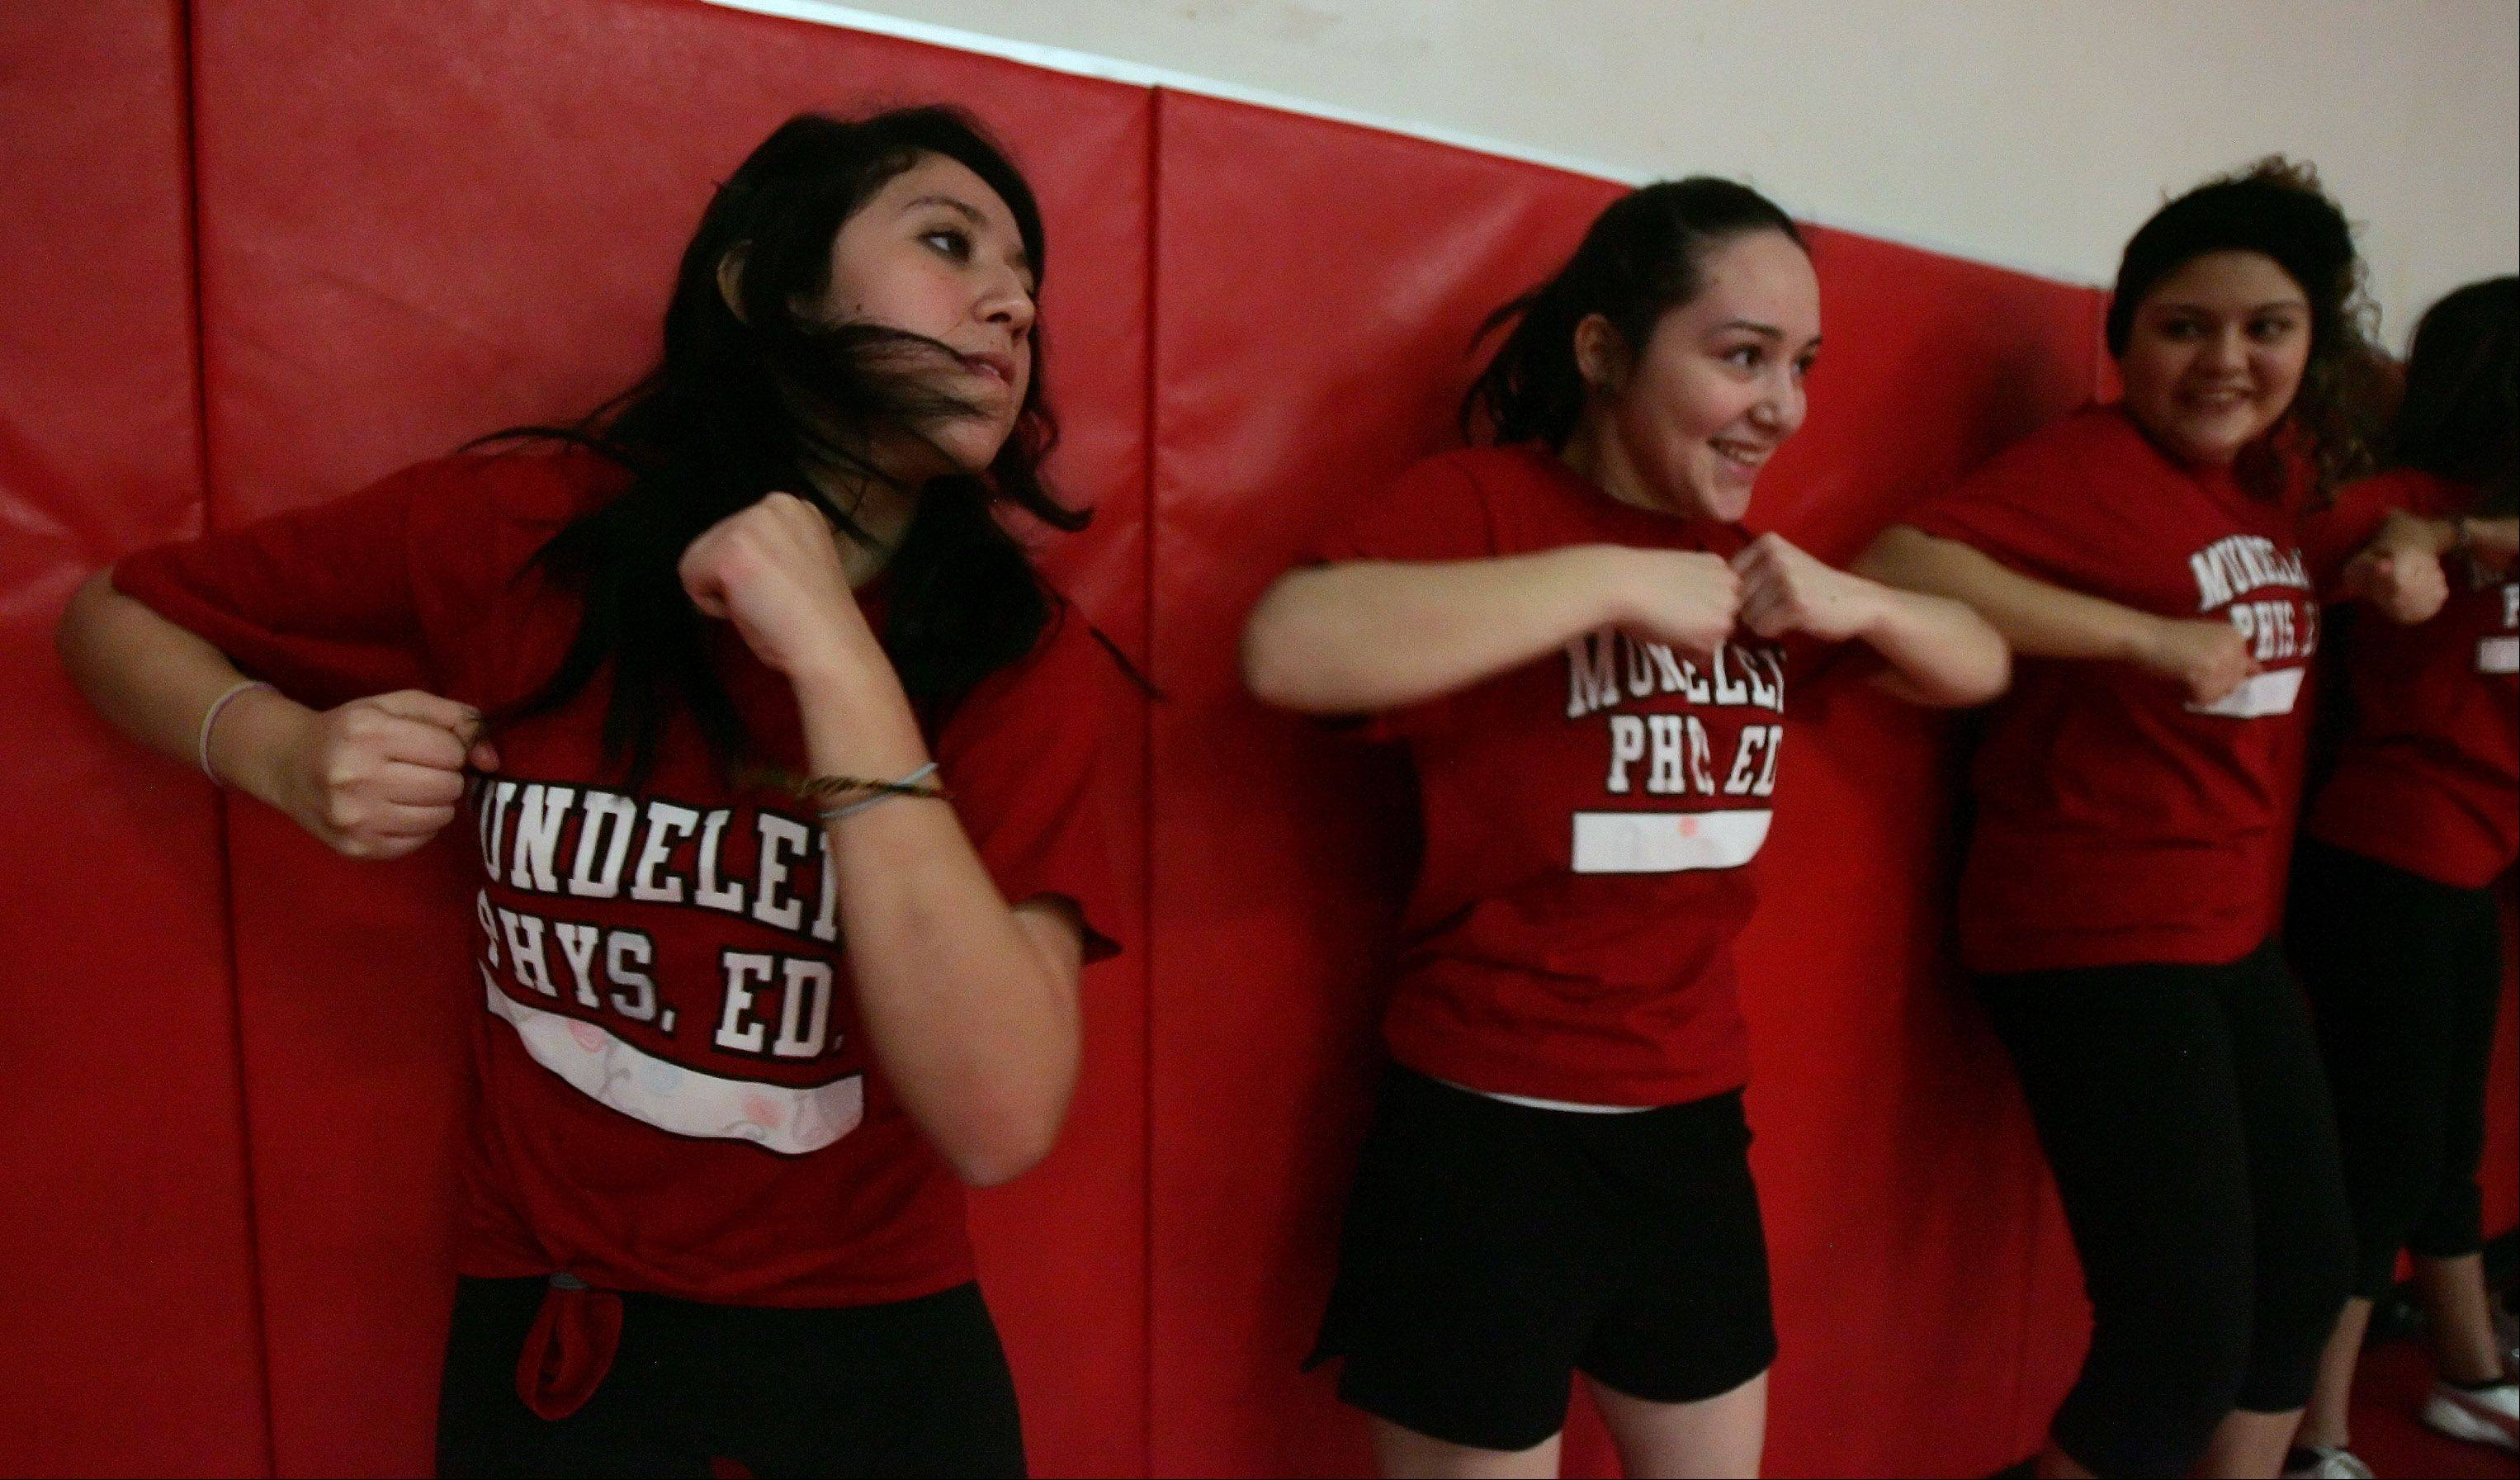 Sophomores Jocelyn Acosta, left, and Adriana Santoro practice elbow punches during a women's self-defense class conducted by the Mundelein Police Department Wednesday at Mundelein High School. The class taught basic defensive moves for teenage girls in case of attack.